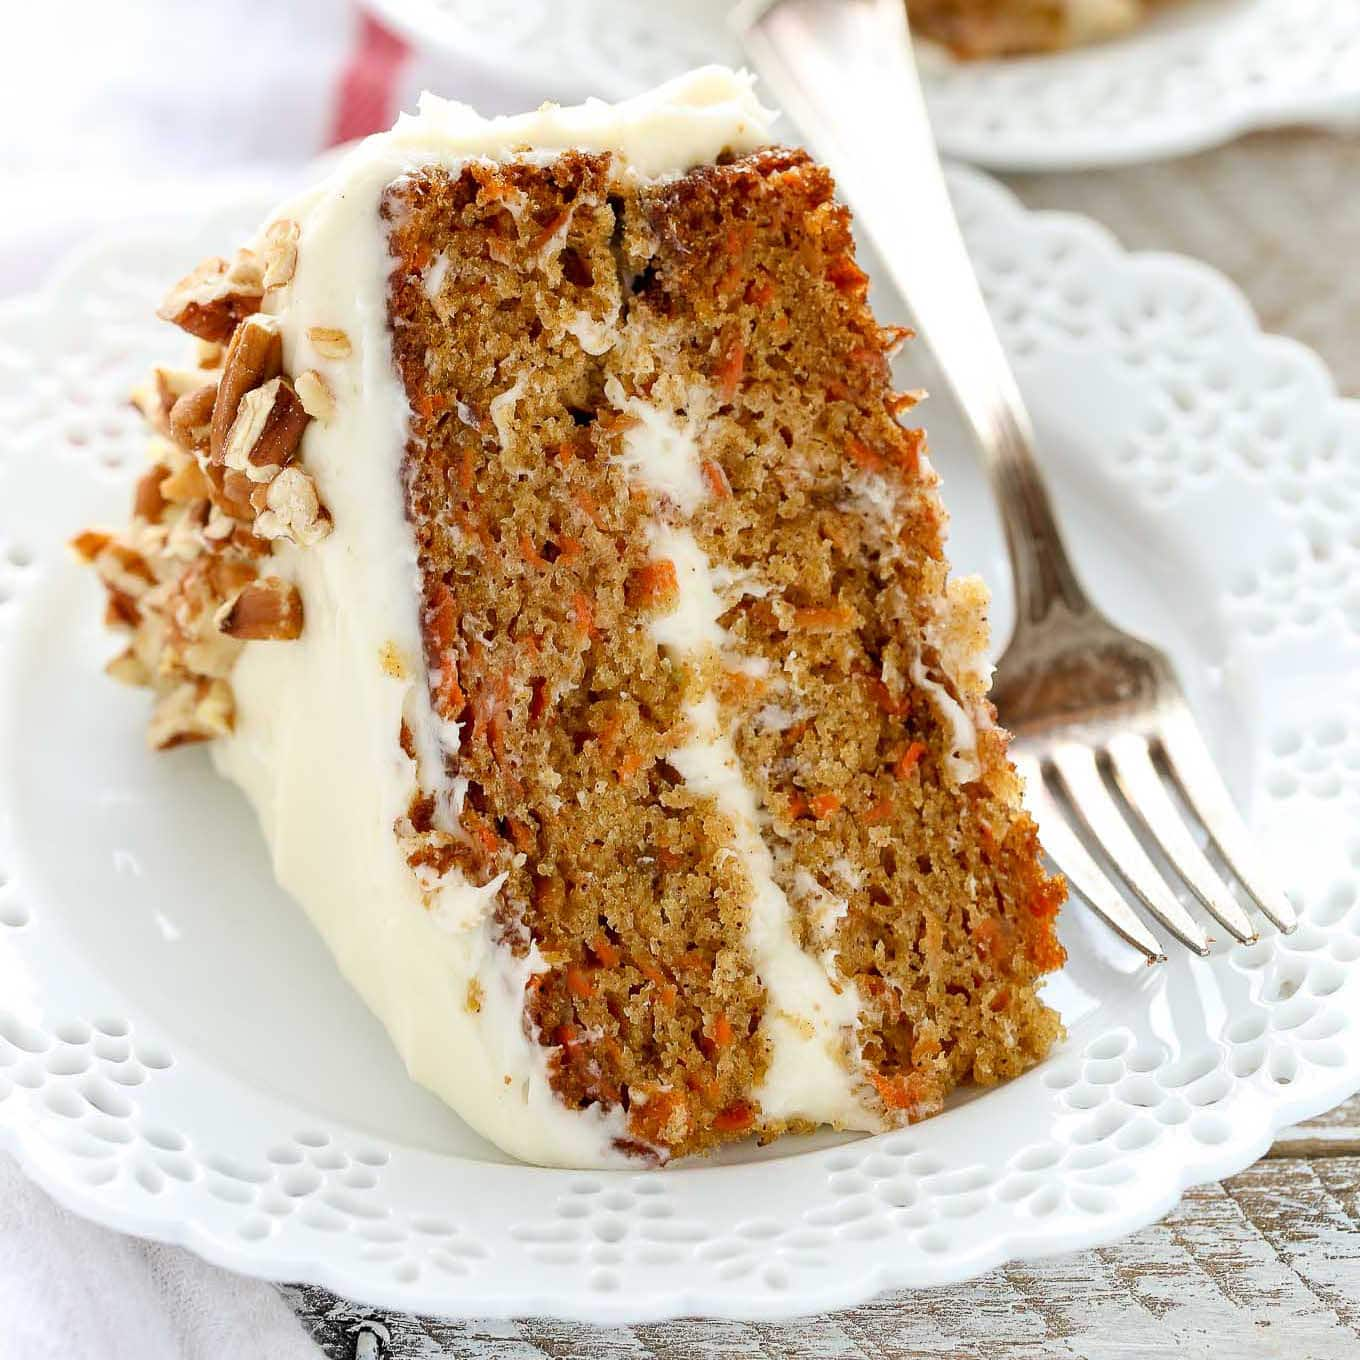 Best Carrot And Walnut Cake